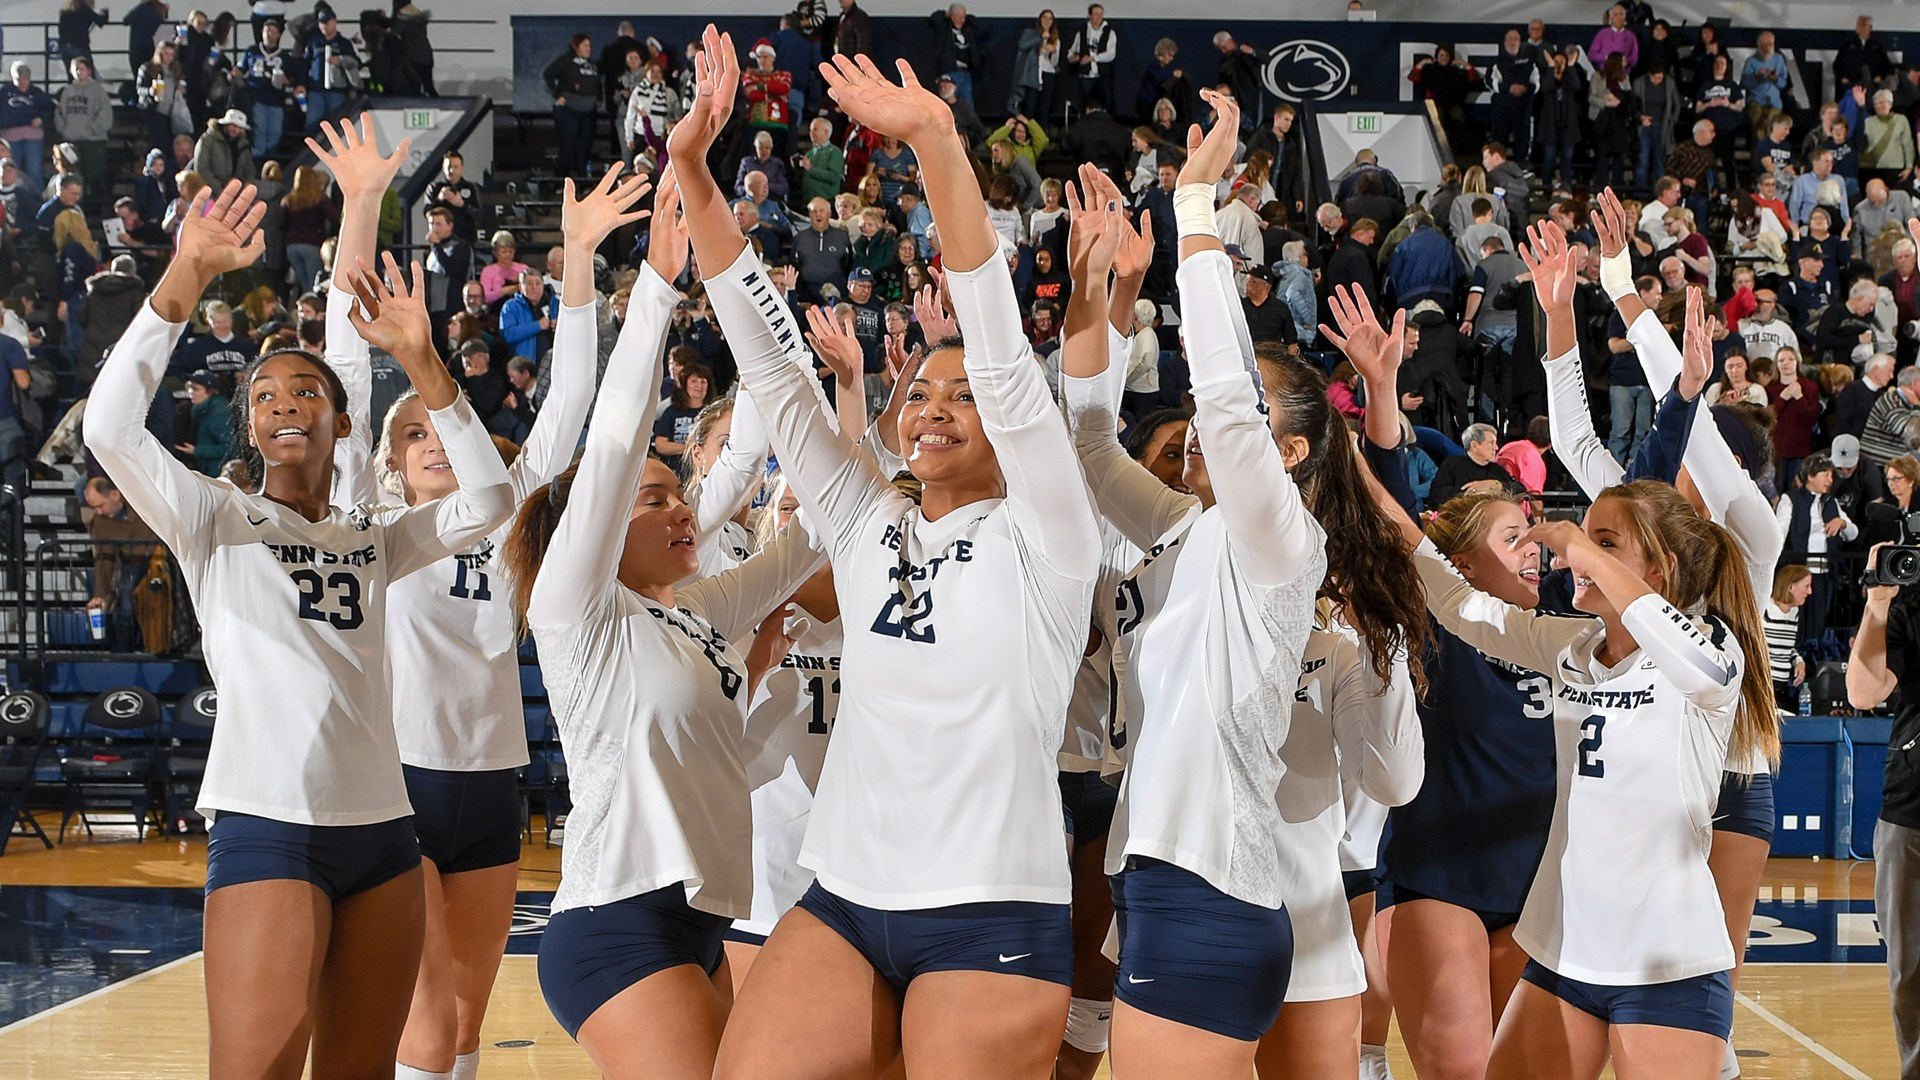 Penn State Announces 2019 Women S Volleyball Schedule Penn State University Athletics